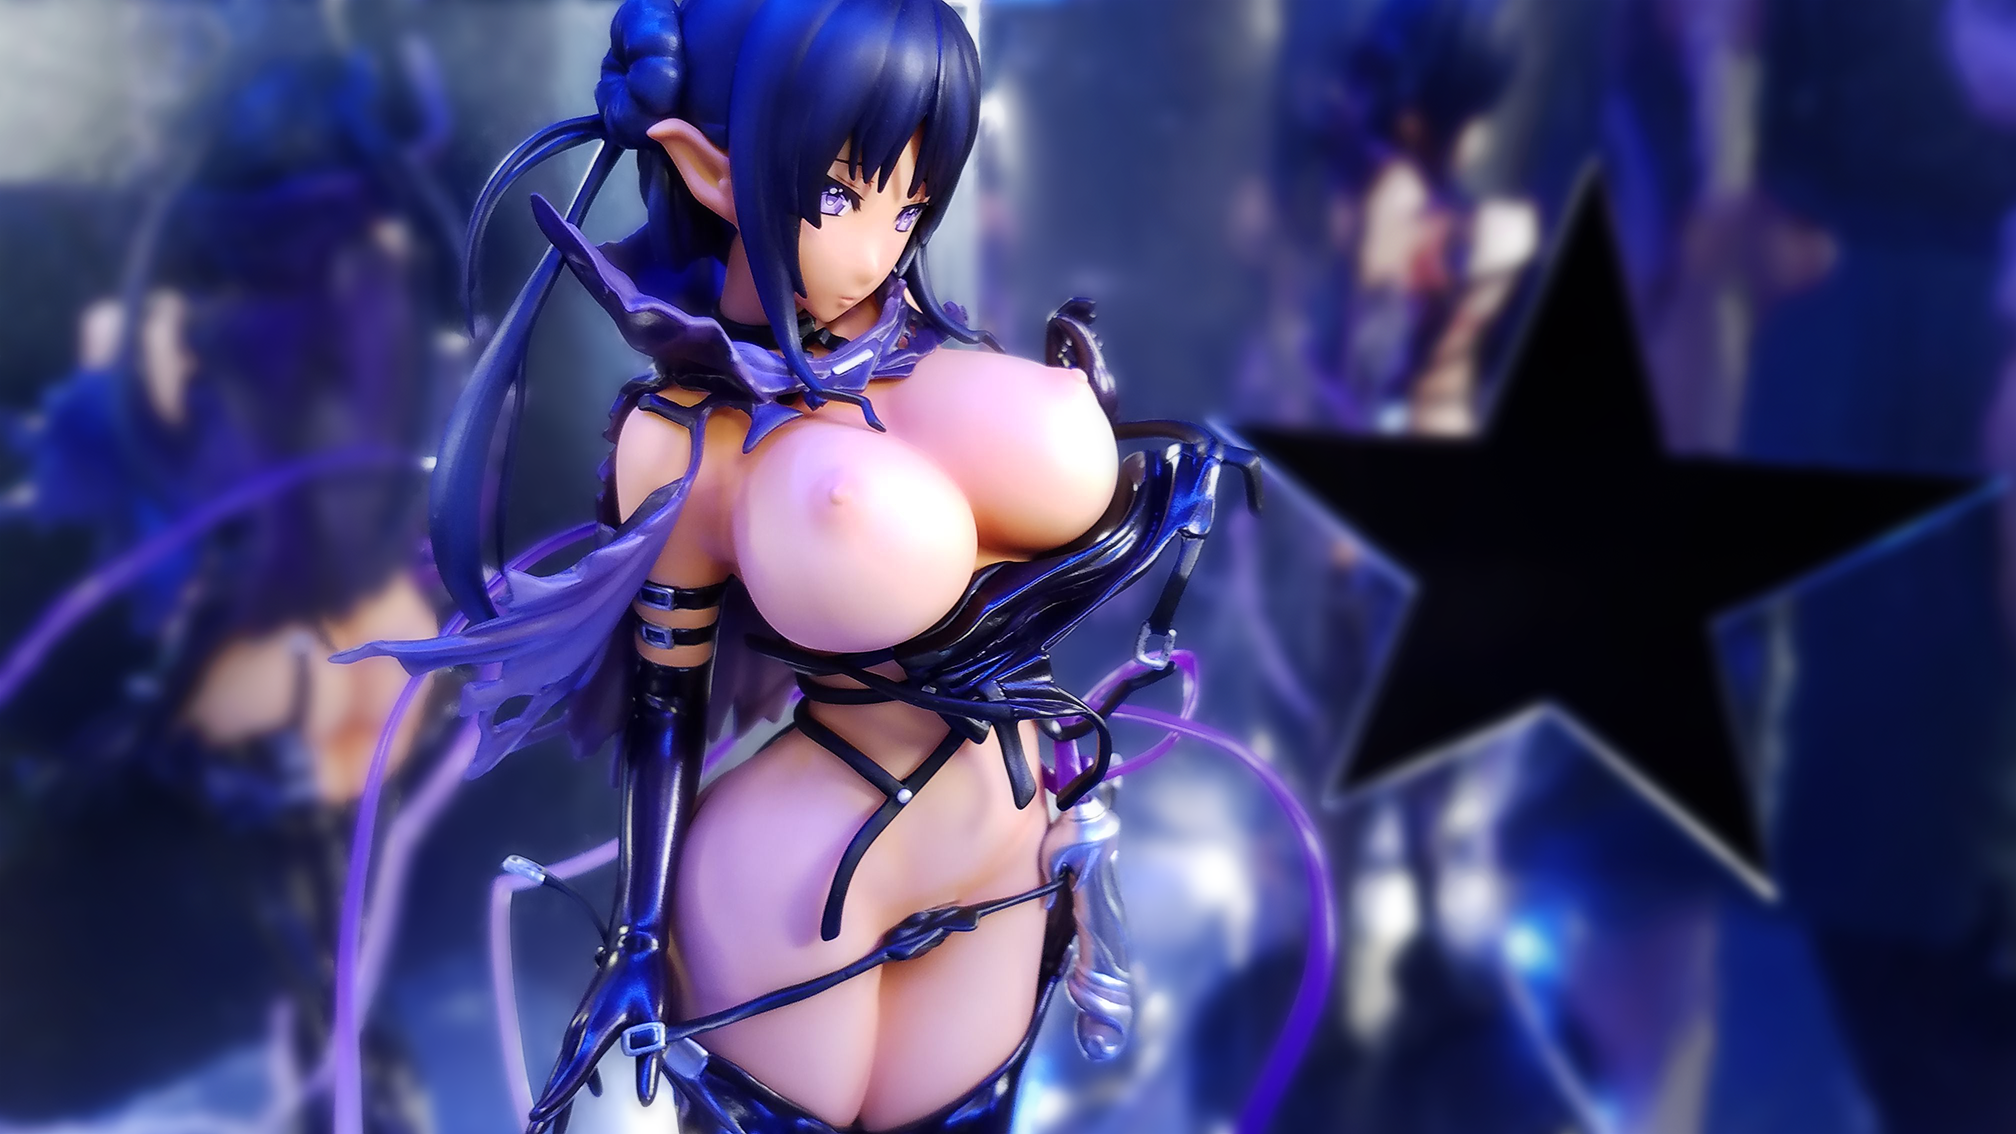 https://static.myfigurecollection.net/upload/pictures/2020/09/02/2509441.png